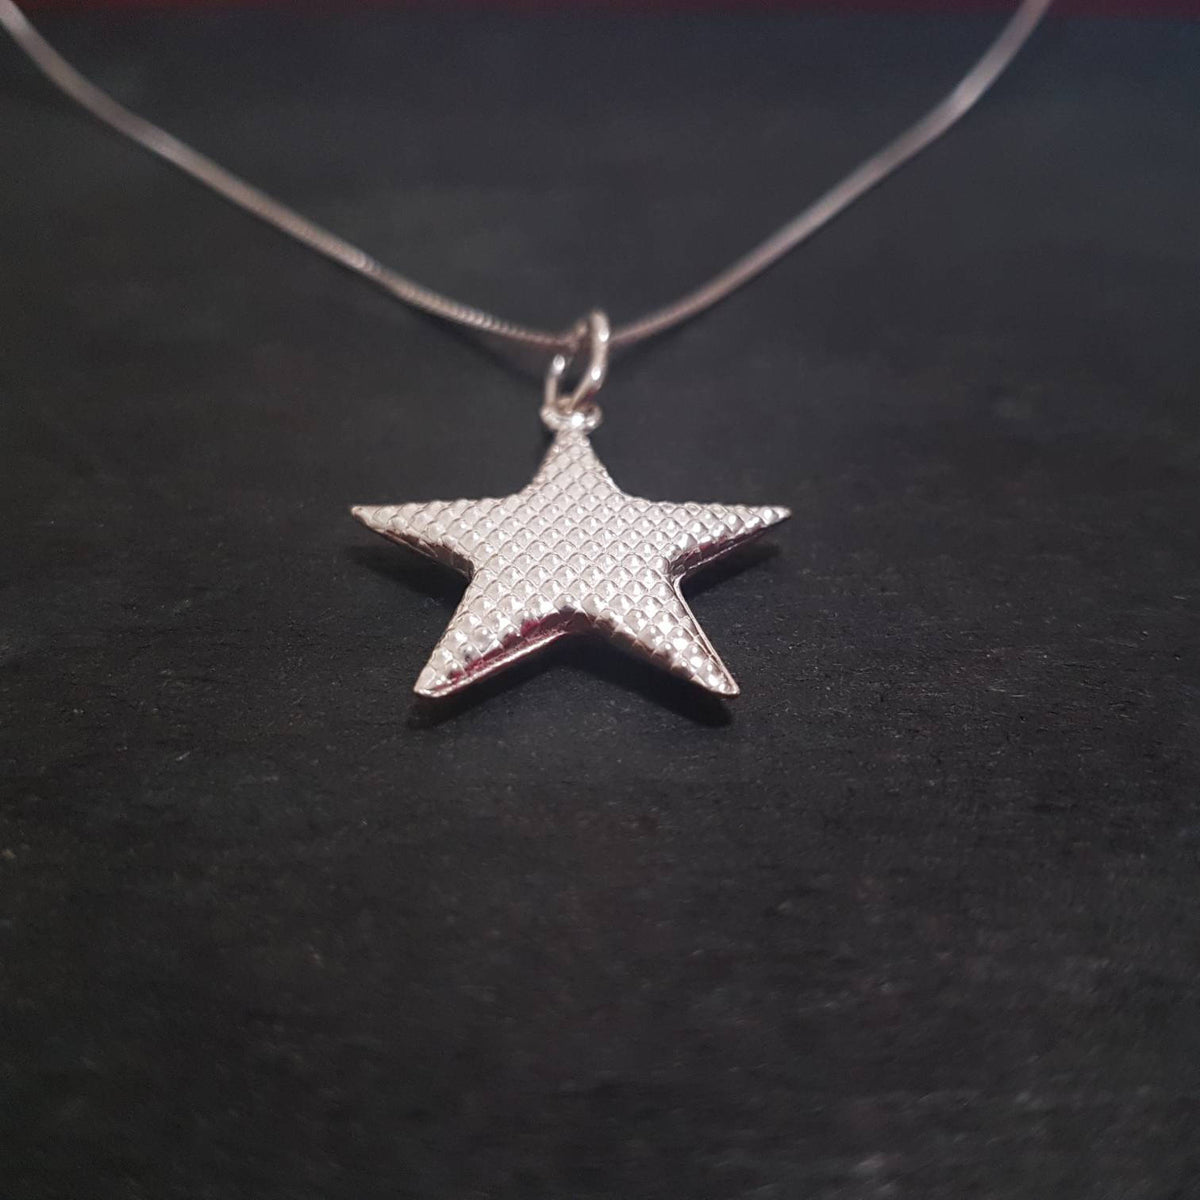 Anti Tarnished 925 Sterling Silver Quilted Star Pendant Charm with free chain